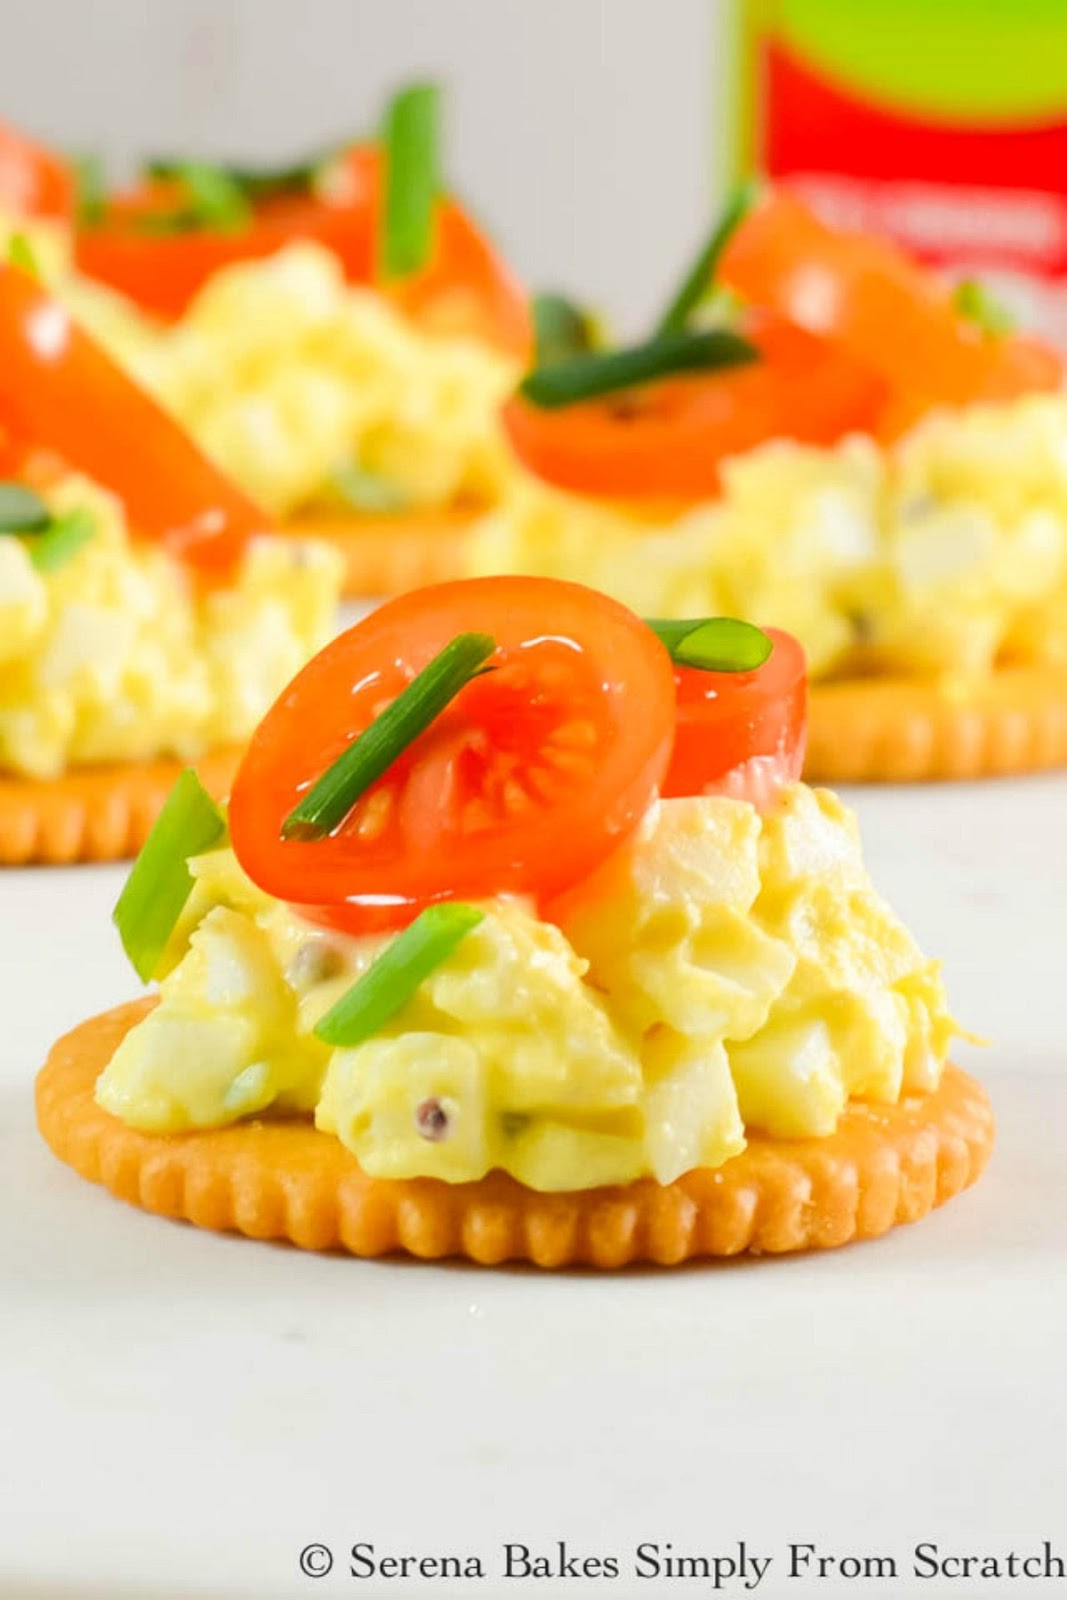 The best easy Egg Salad recipe to serve on crackers with a slice of tomato and chives for an easy appetizer or to fill an Egg Salad Sandwich from Serena Bakes Simply From Scratch.